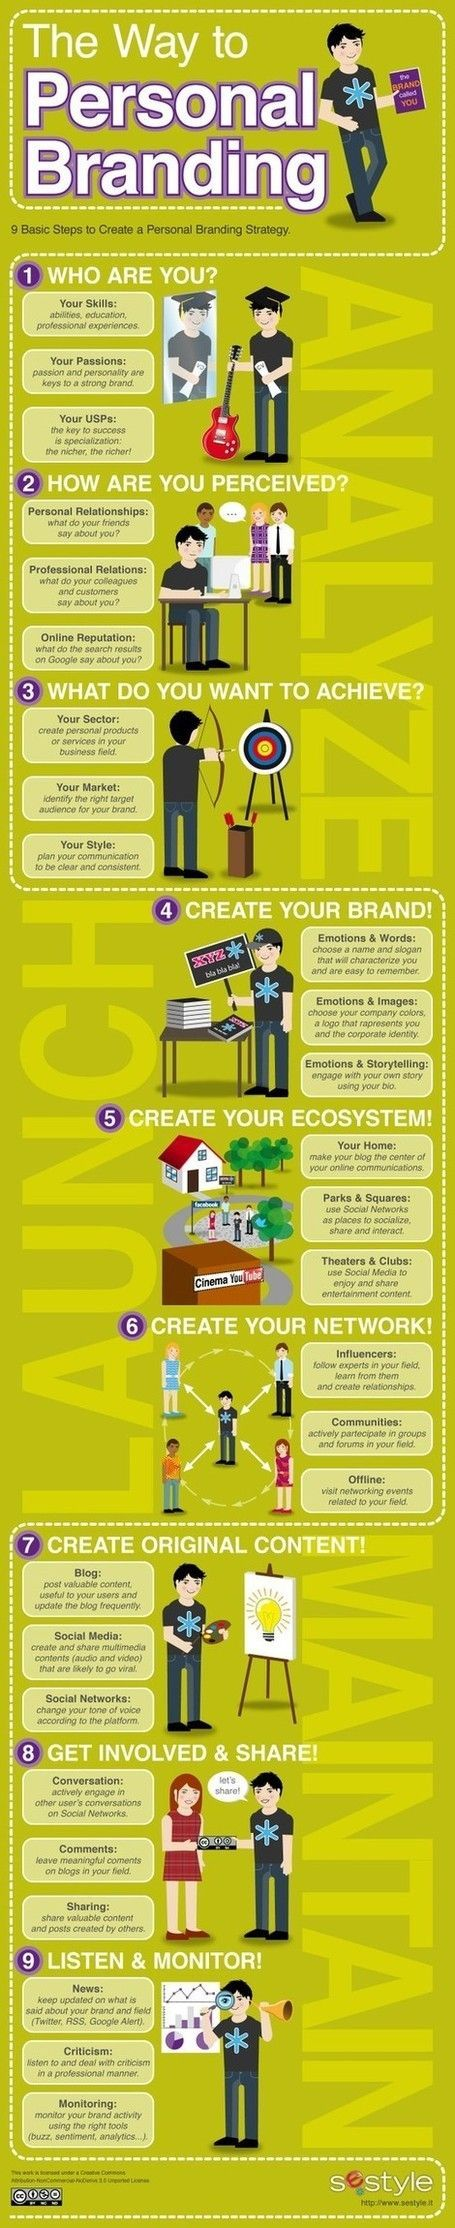 Personal Branding #Infographic 9 Basic Steps to Create a Personal Branding Strategy. Easy steps for defining your brand and connecting with your core audience. Use this tips to help to build your author and writer brand.